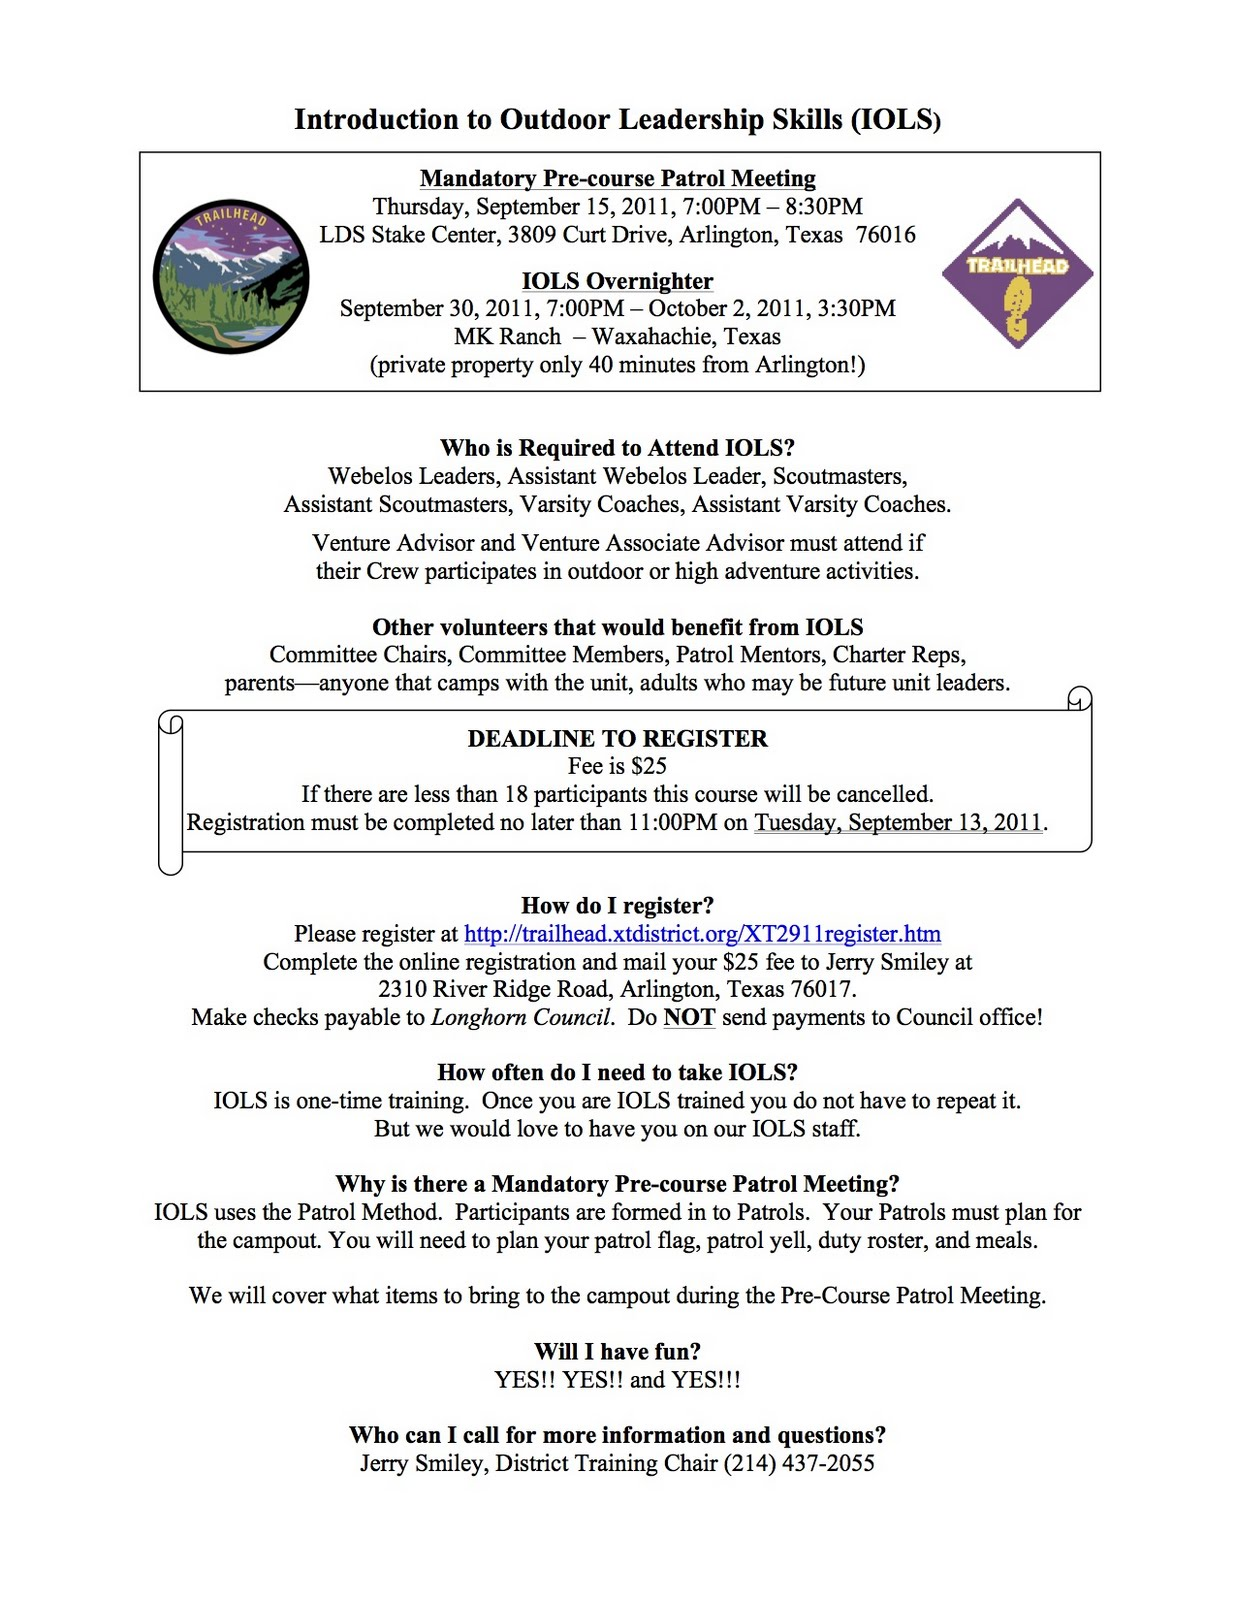 BSA Cross Timbers District: Introduction to Outdoor